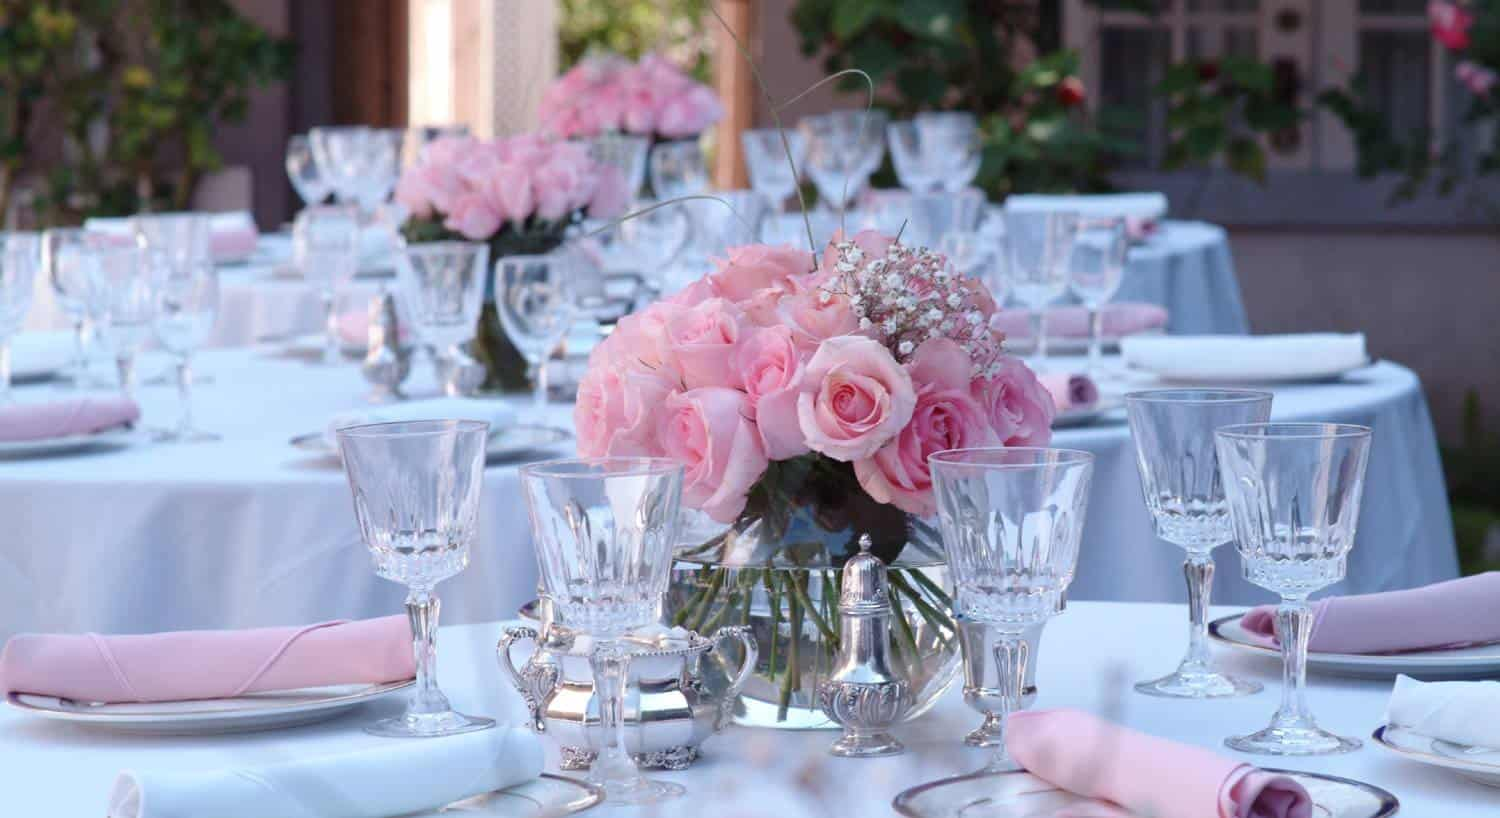 Beautiful white round tables with chairs set for a wedding with pink napkins and pink roses